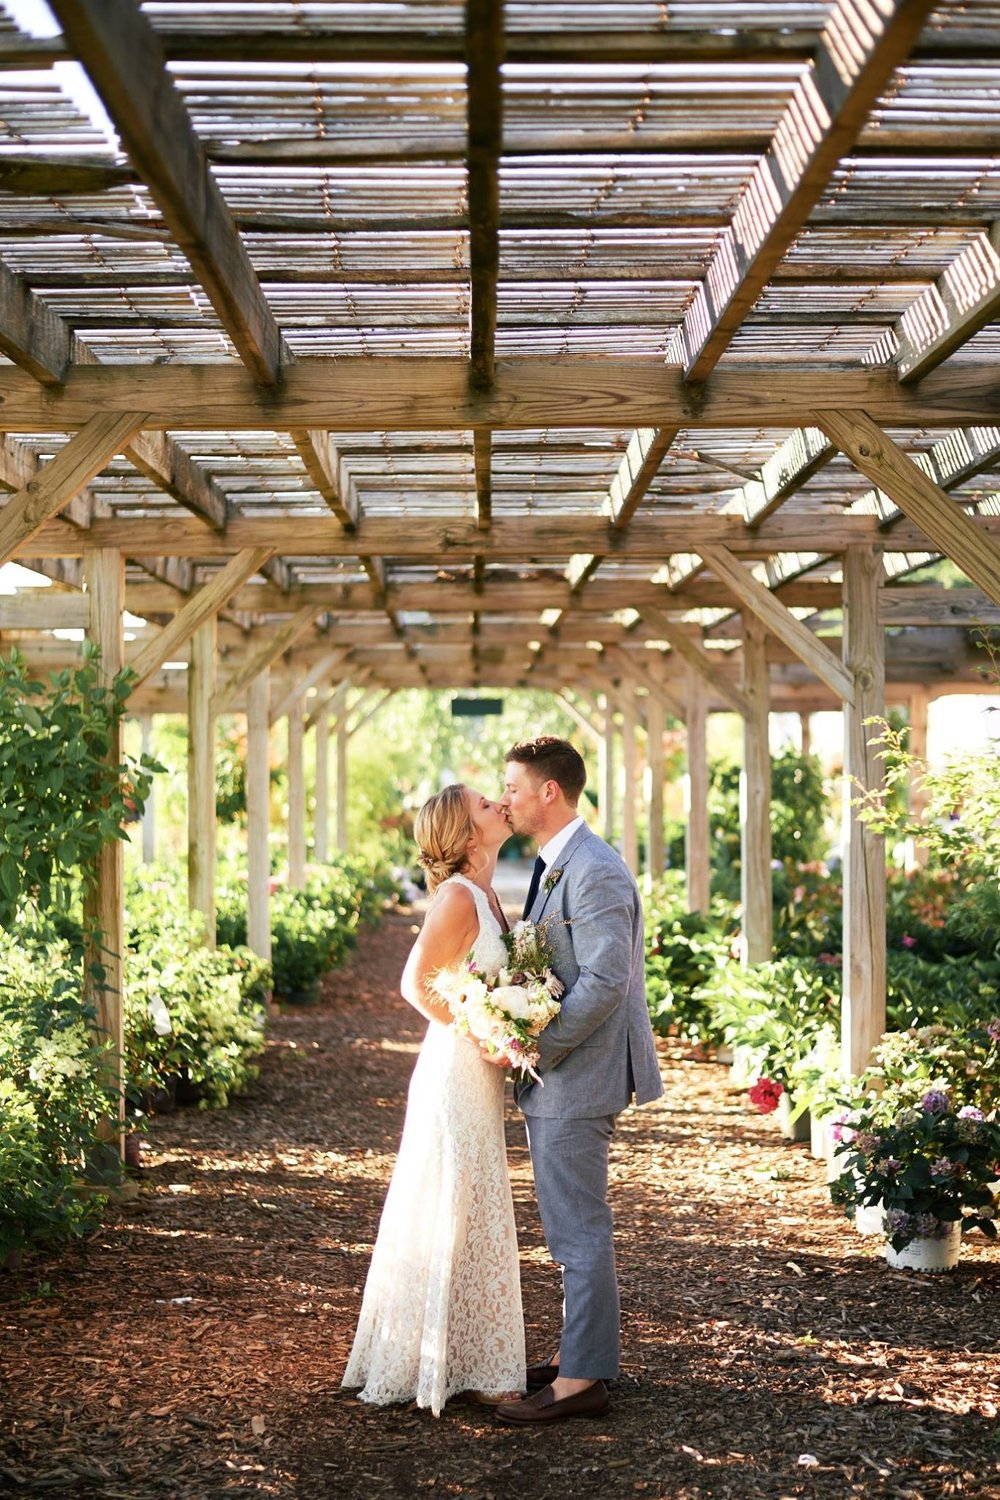 Couples portraits in the garden at The Farmers Daughter - Pearl Weddings & Events